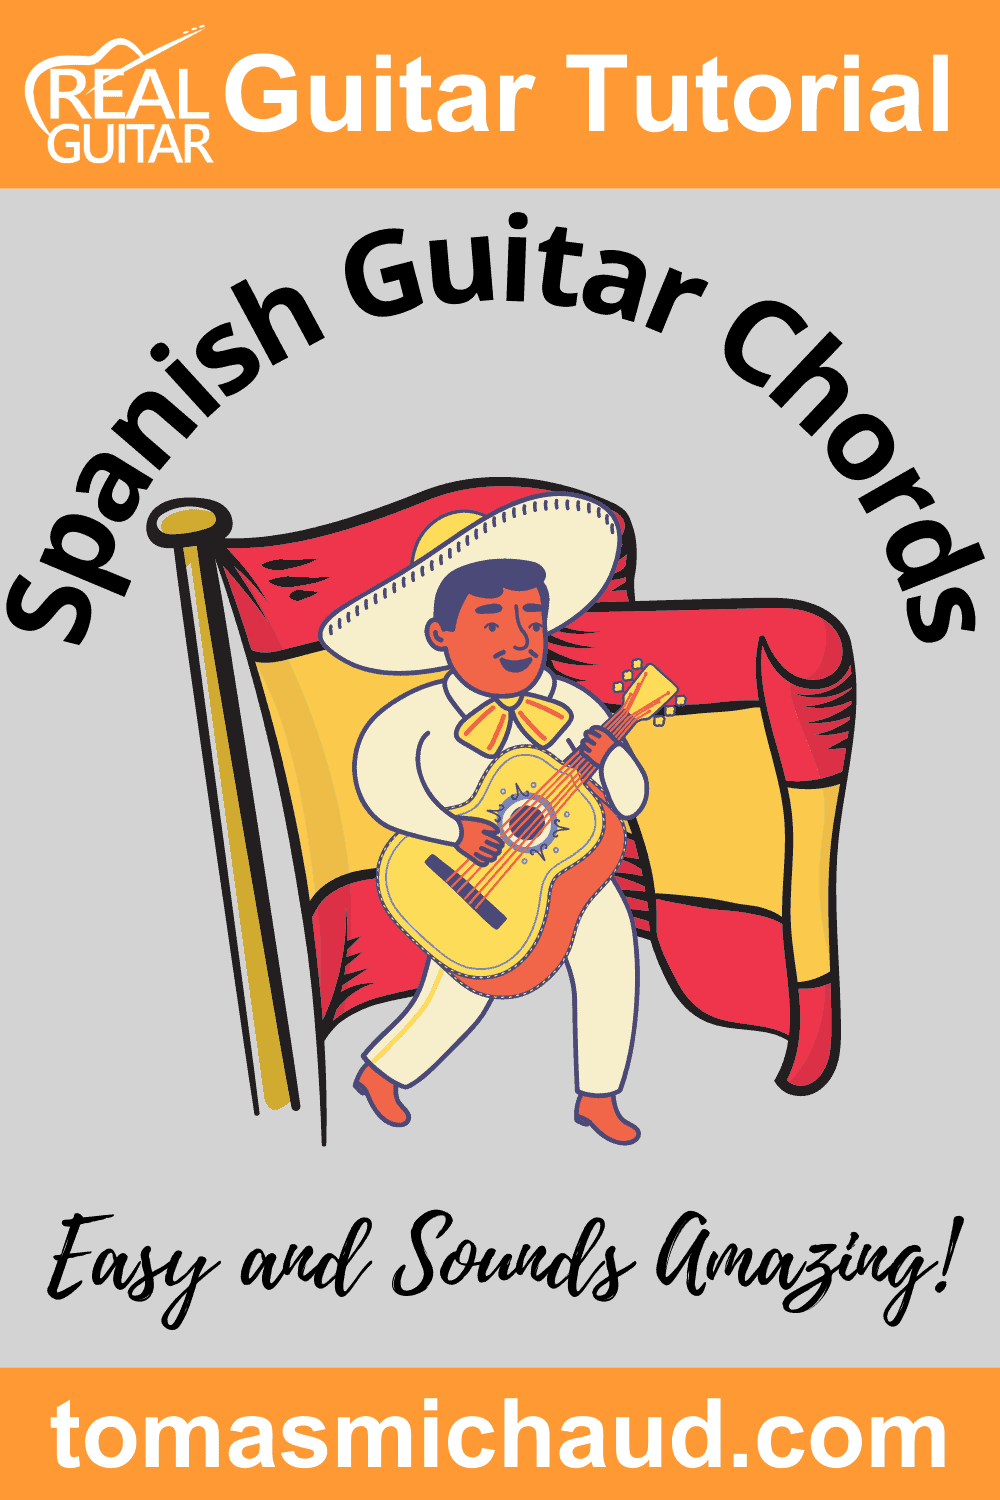 Spanish Guitar Chords. Easy and sounds amazing!